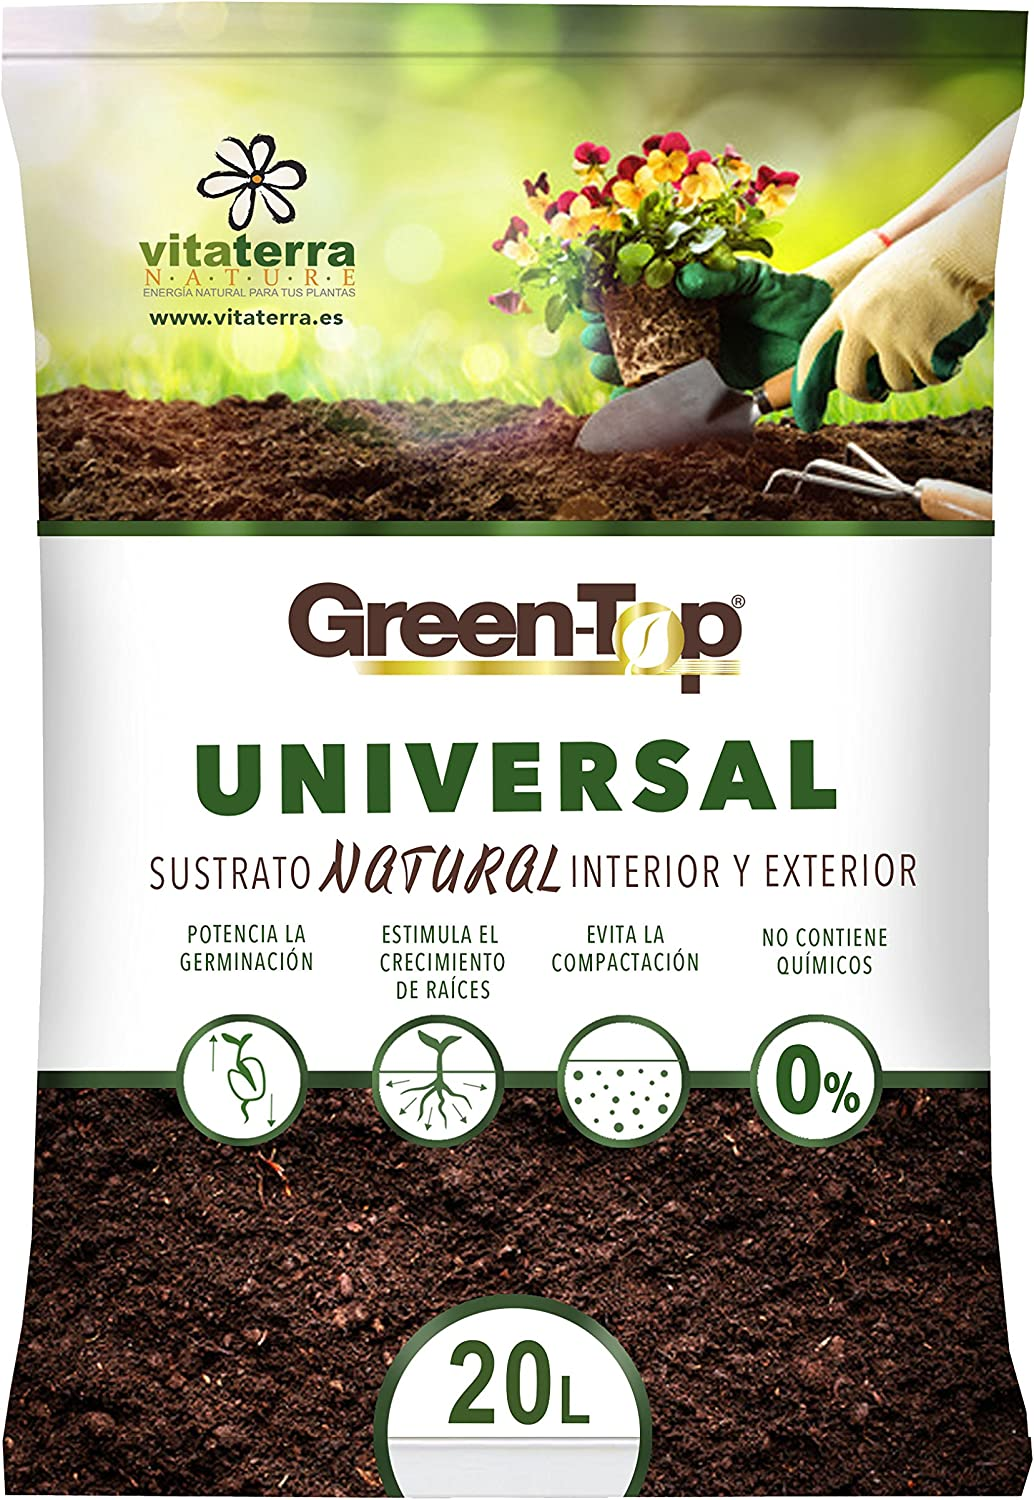 Vitaterra Sustrato Universal Natural 20 l, 10120: Amazon.es: Jardín